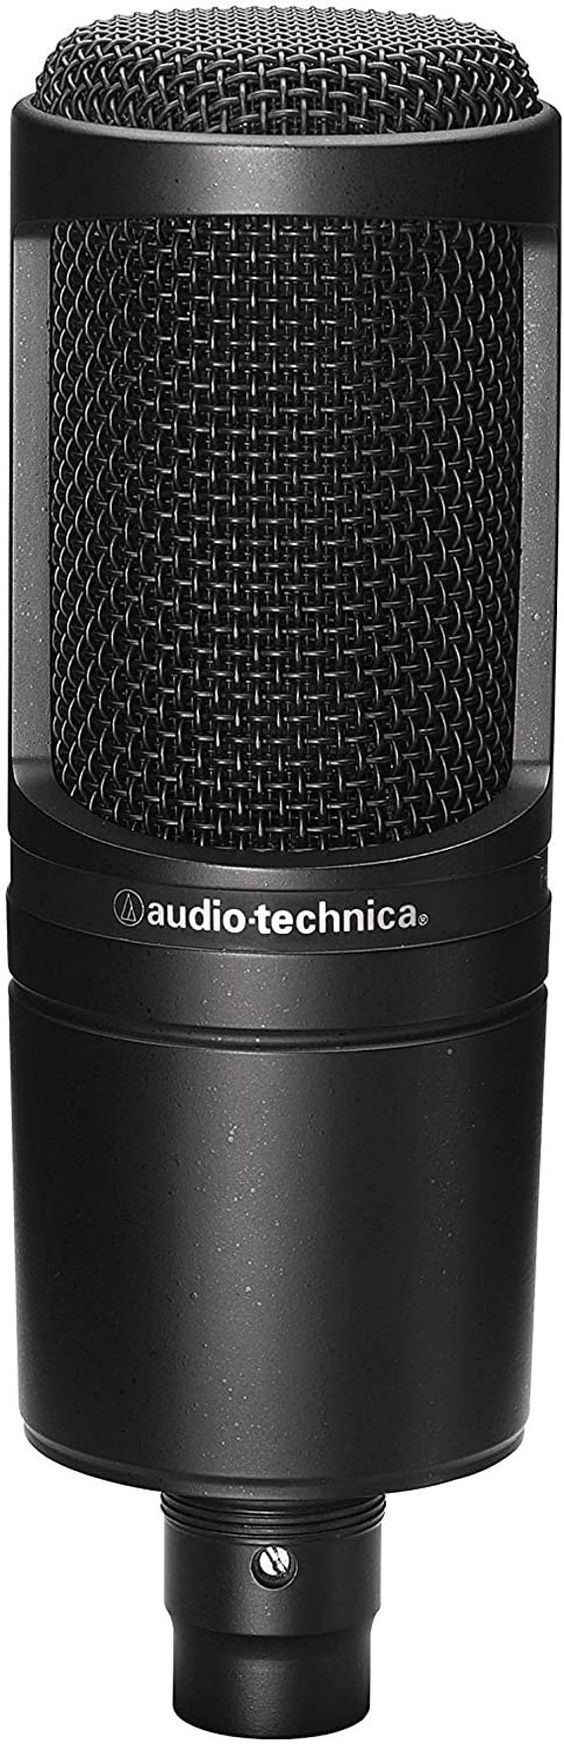 Cardioid Condenser Studio Xlr Microphone Black Ideal For Etsy In 2021 Audio Technica Microphone Microphones